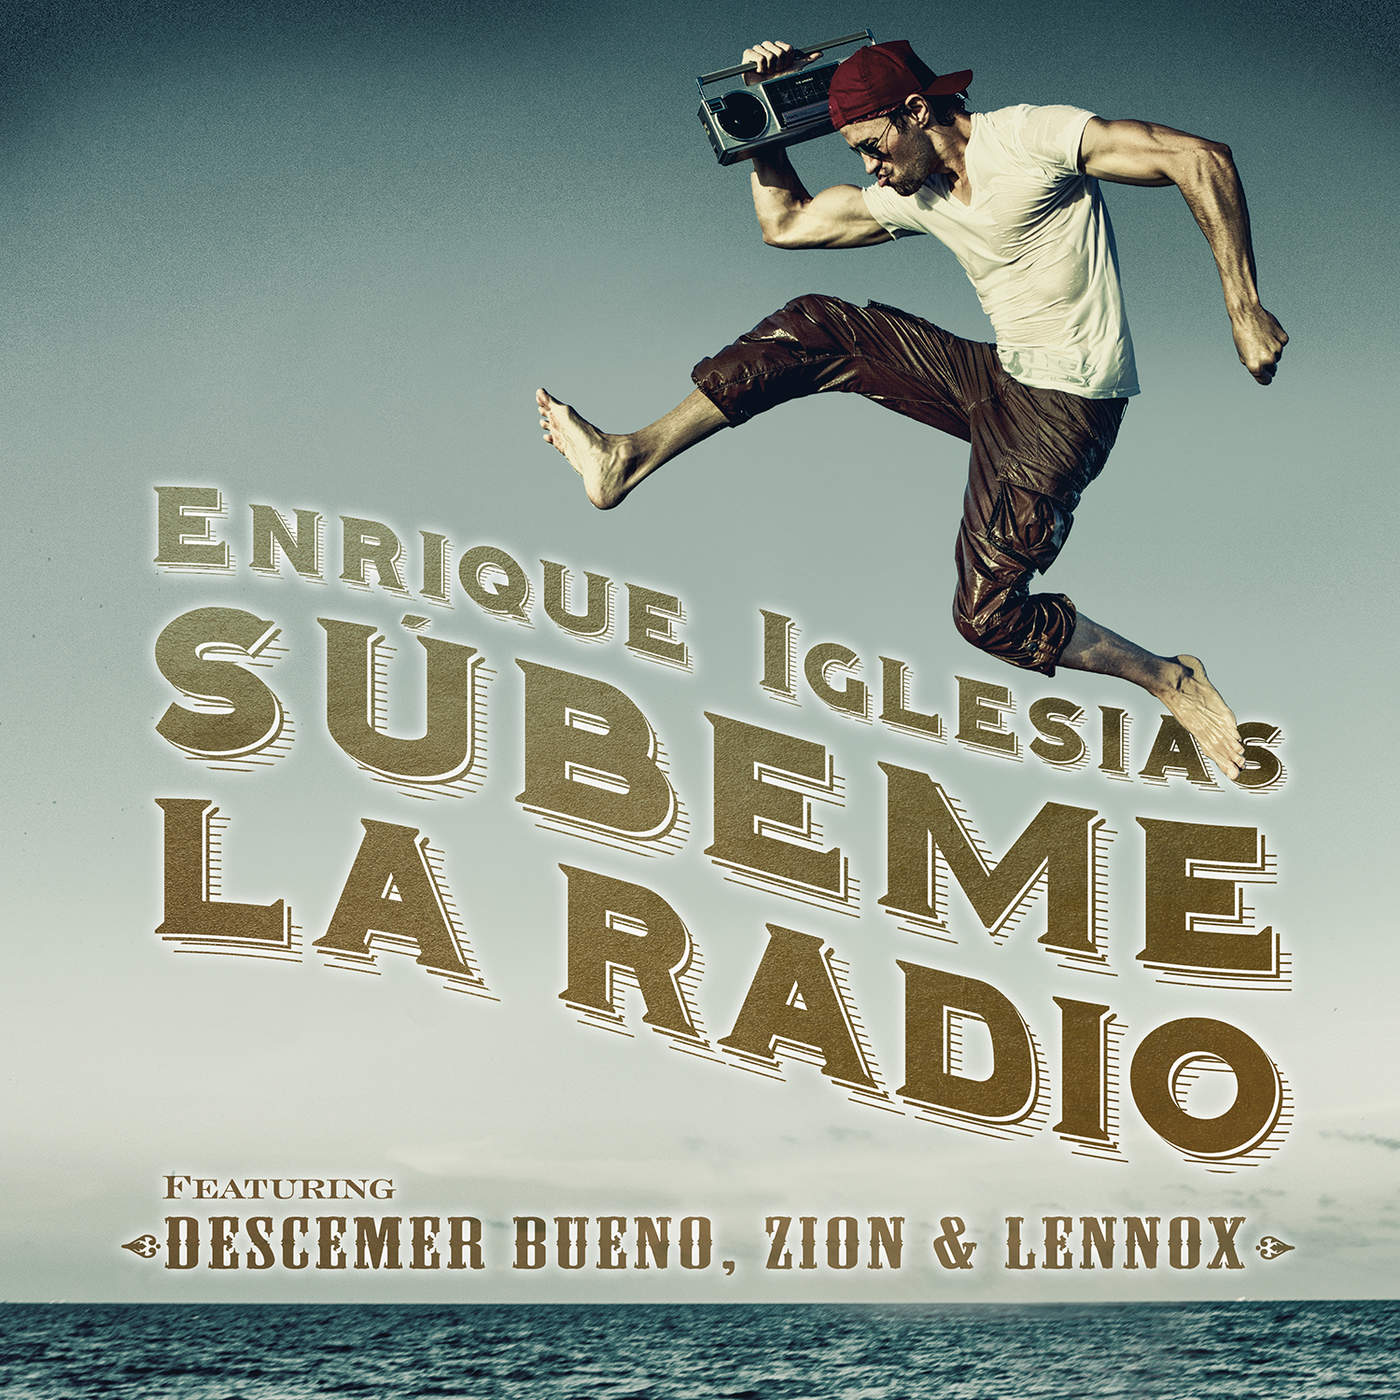 Enrique Iglesias - SUBEME LA RADIO (feat. Descemer Bueno, Zion & Lennox) - Single